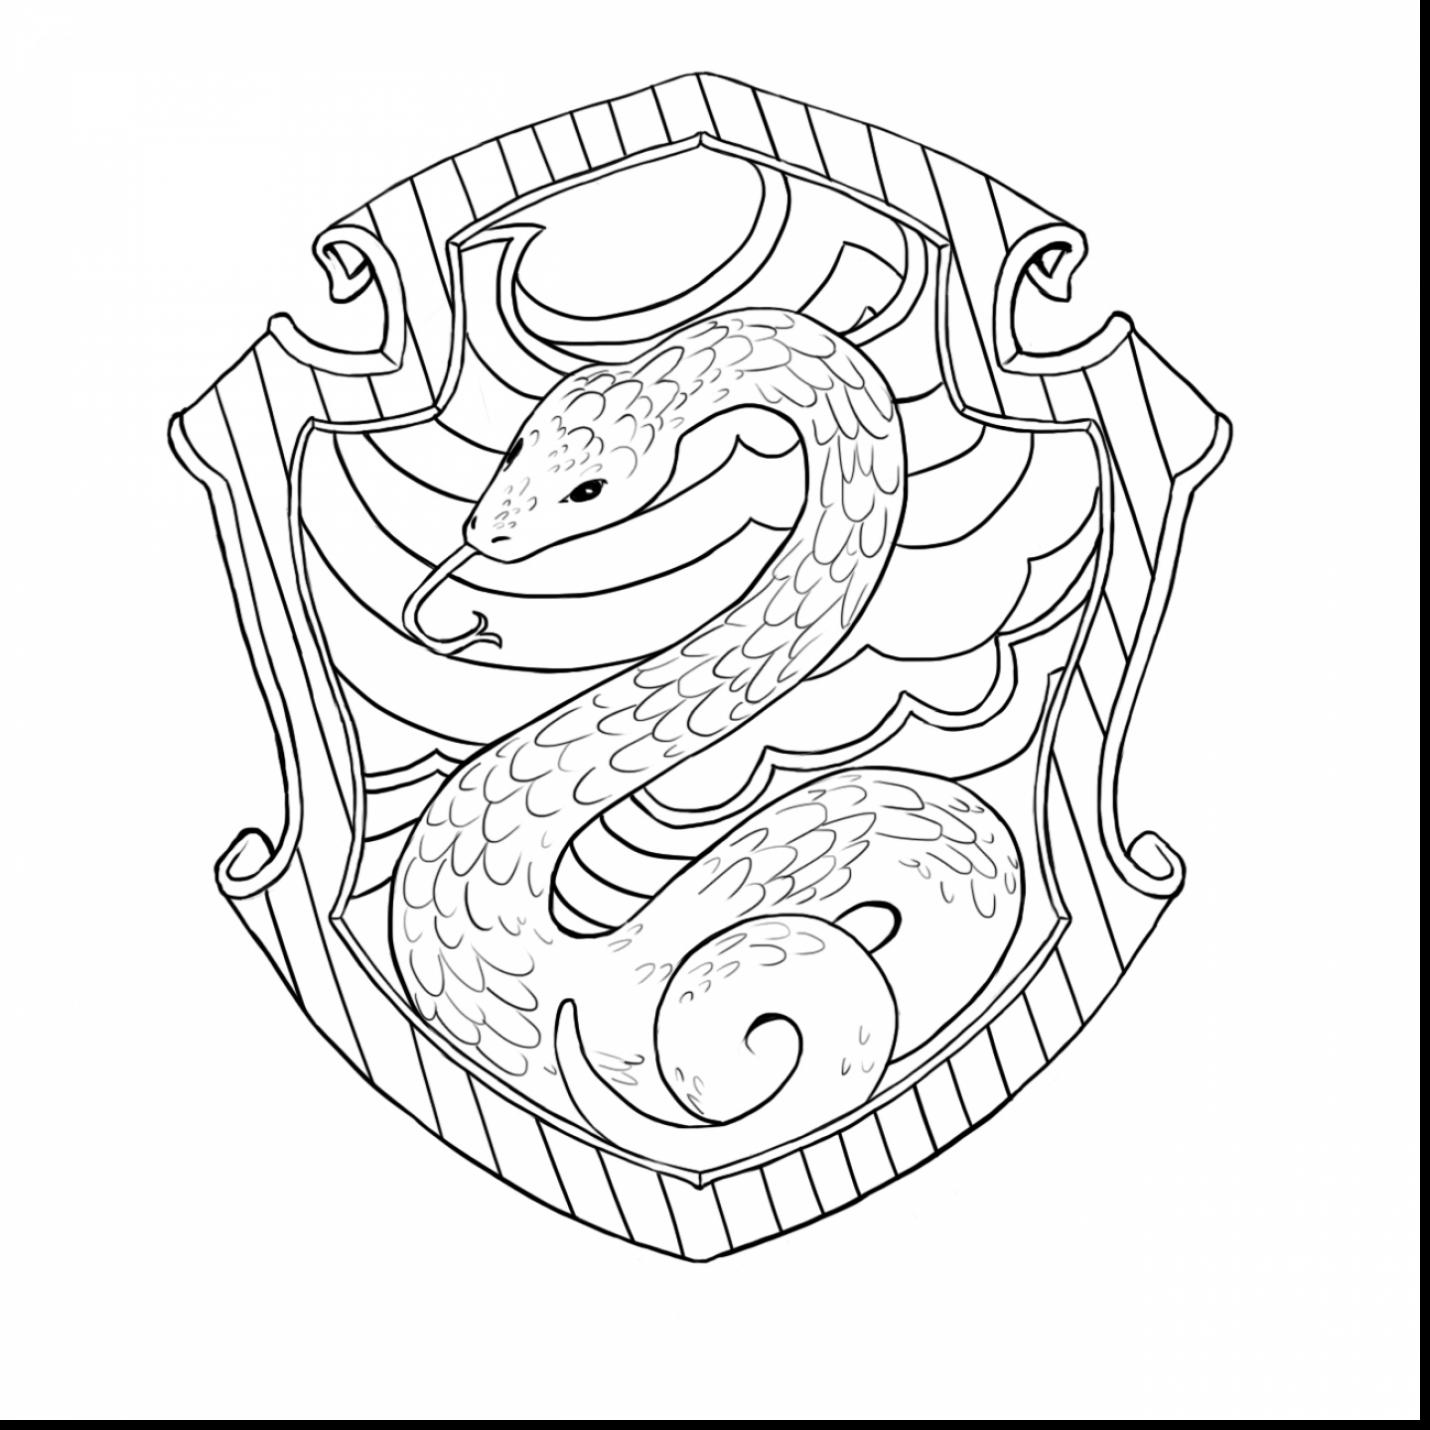 Harry Potter Hedwig Drawing At Getdrawings Com Free For Personal